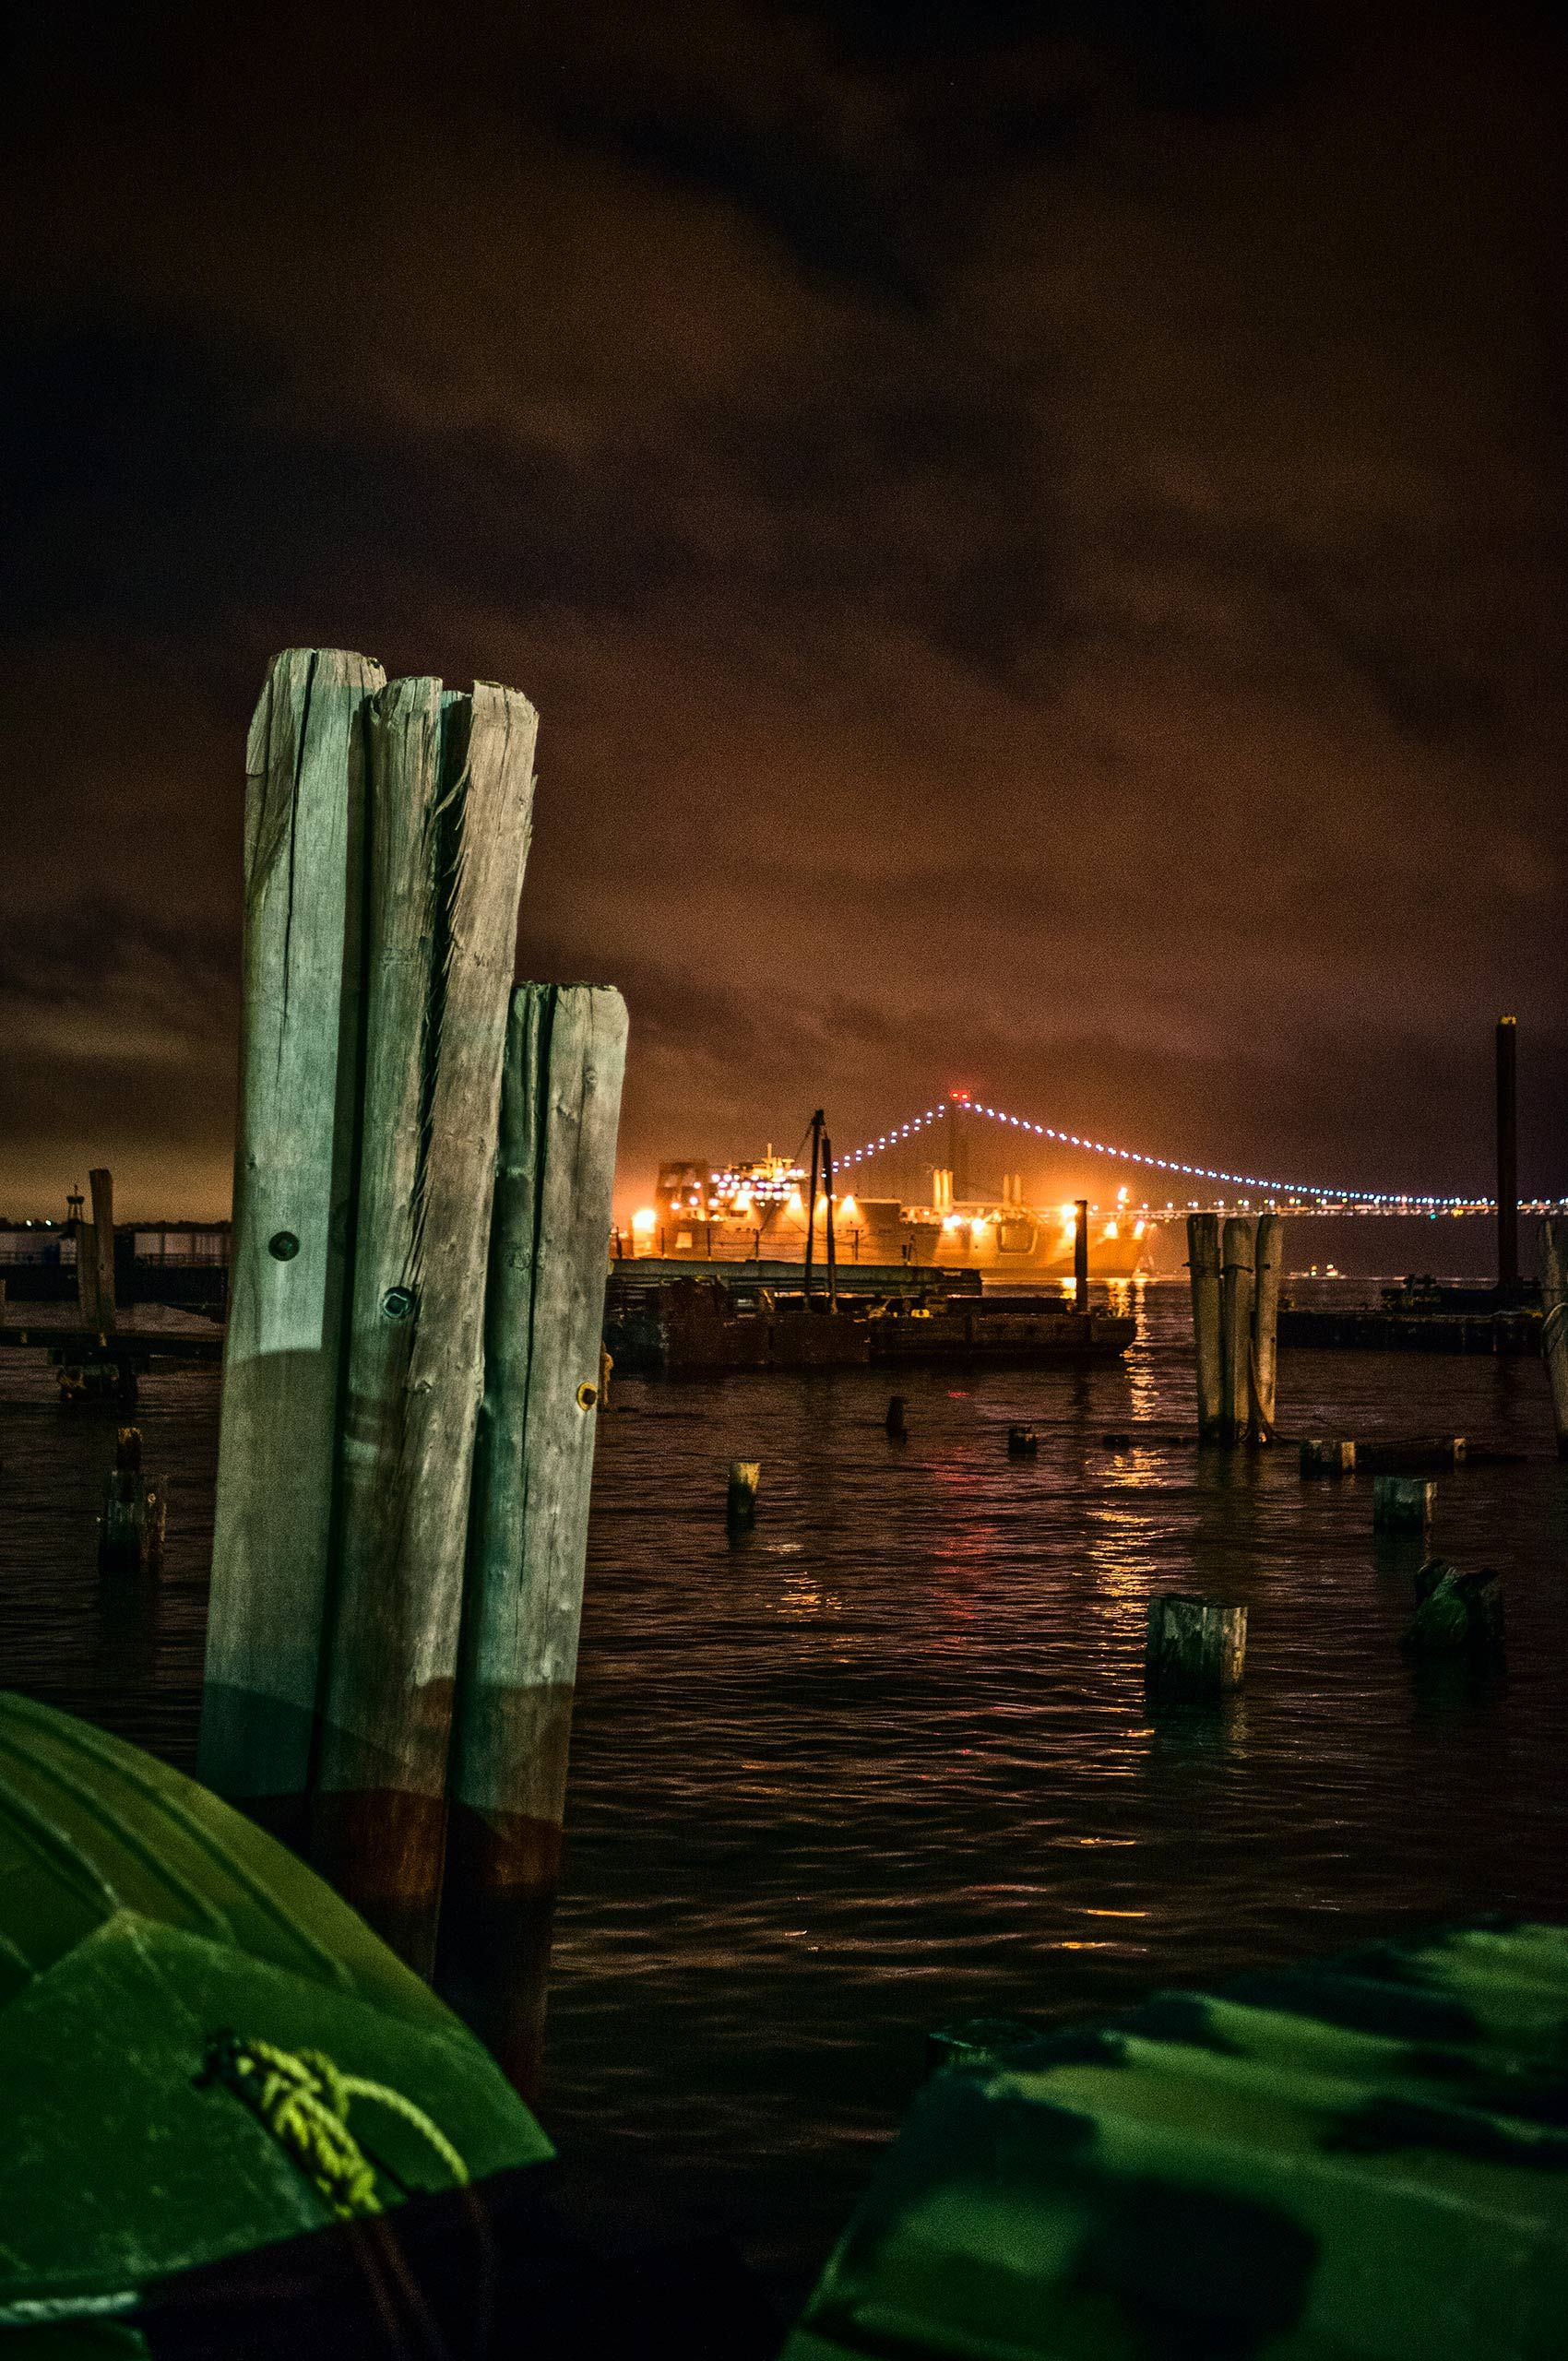 Harbor-Night-StatenIsland-HenrikOlundPhotography.jpg